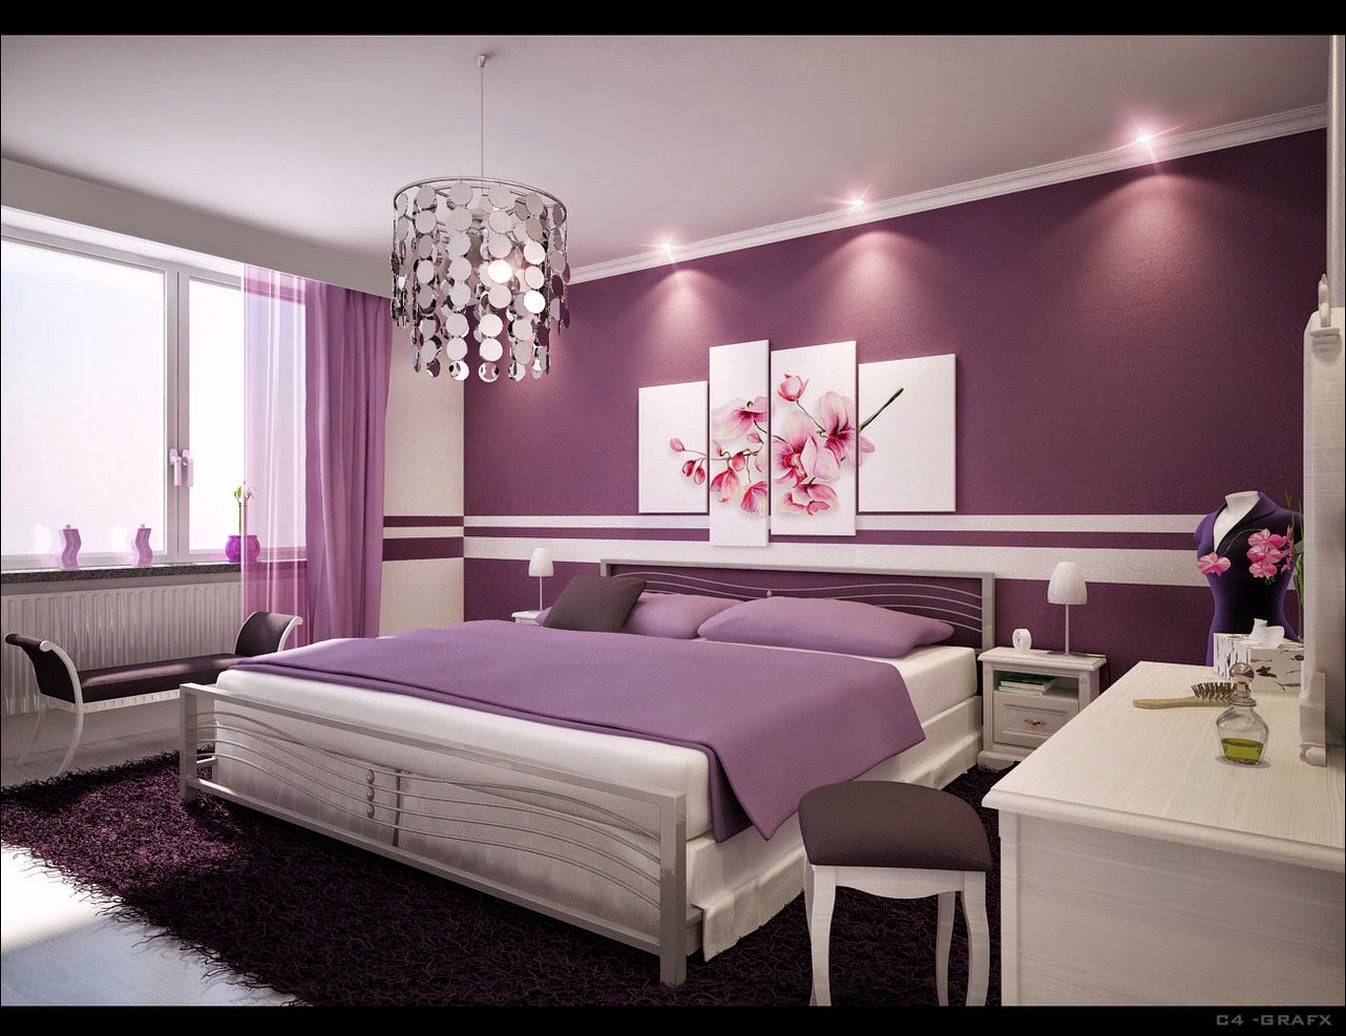 Beautiful bedroom design free download wallpaper for Beautiful bedroom design hd images